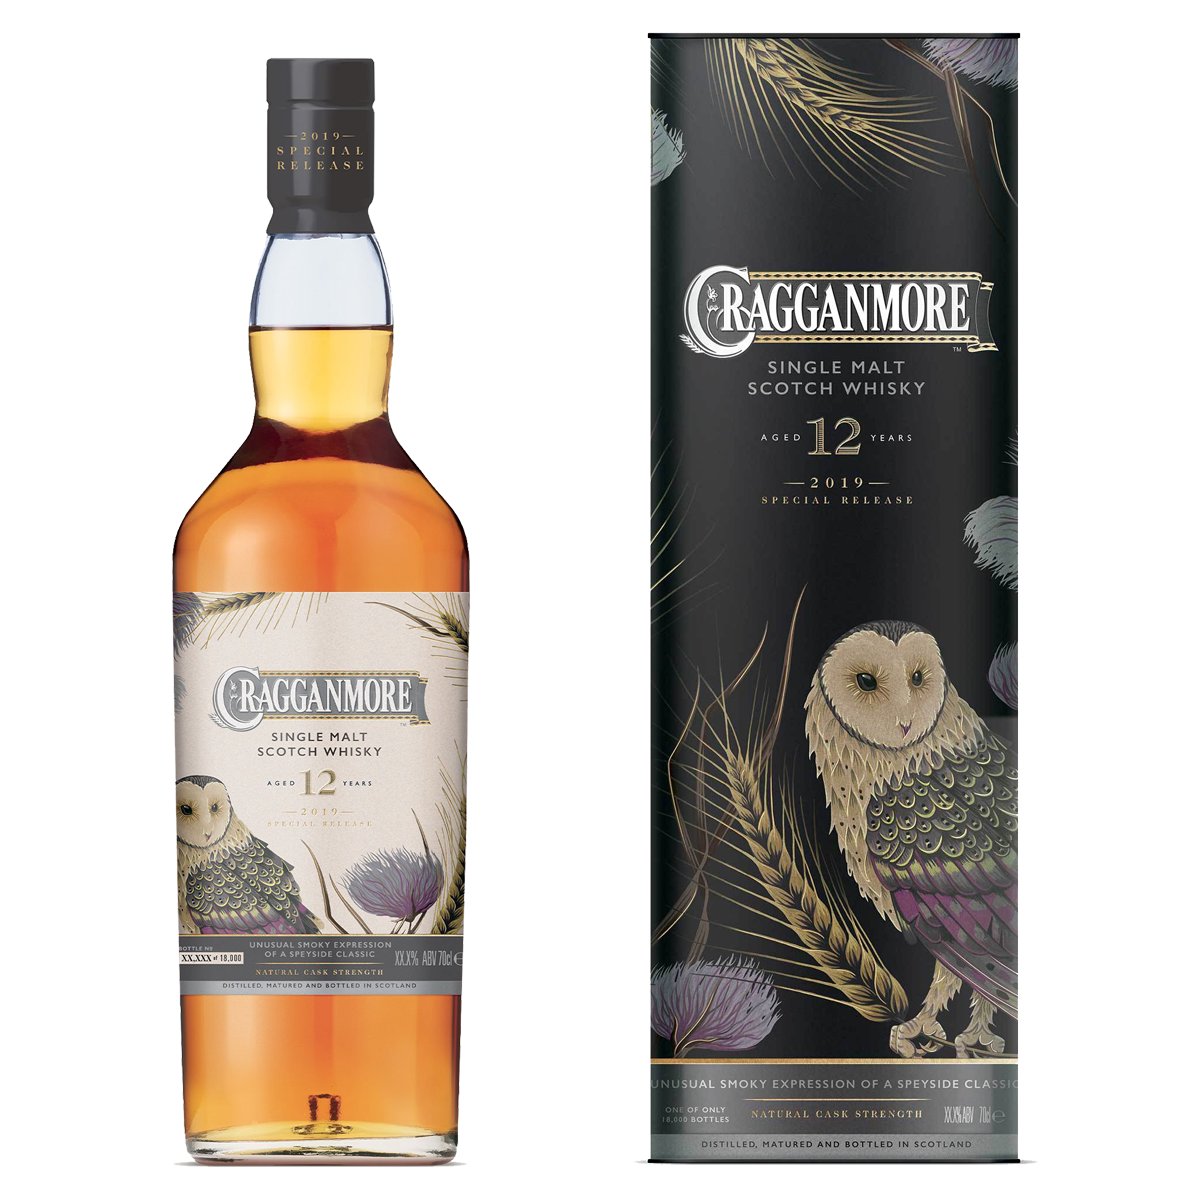 Rare By Nature whisky collection special releases 2019 CRAGGANMORE 12